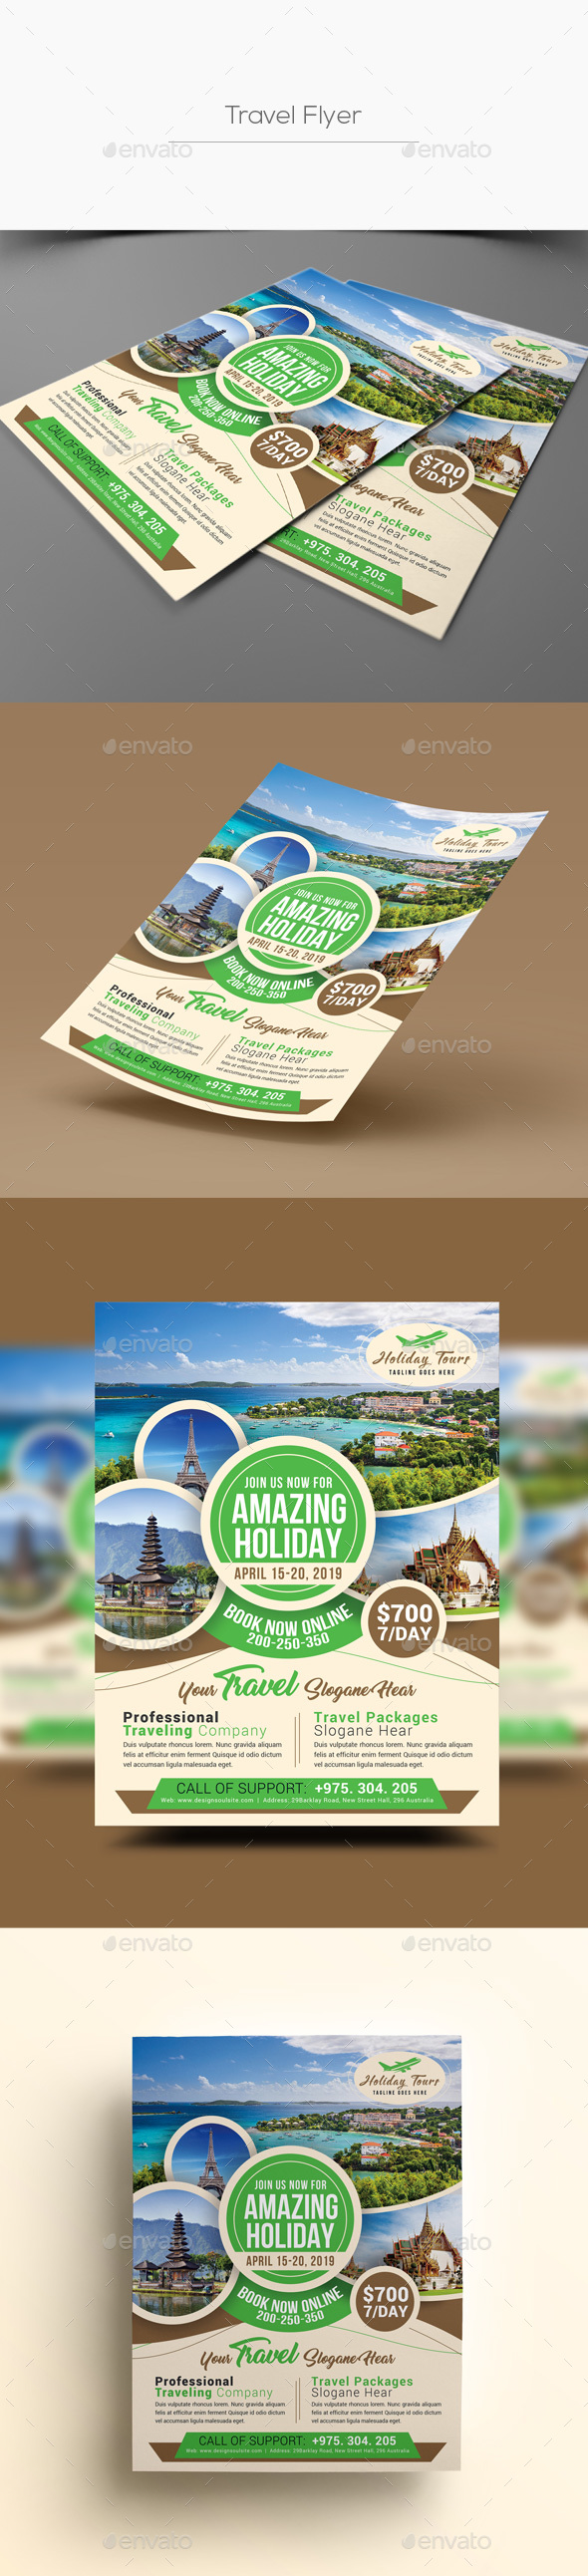 Travel Flyer - Corporate Flyers